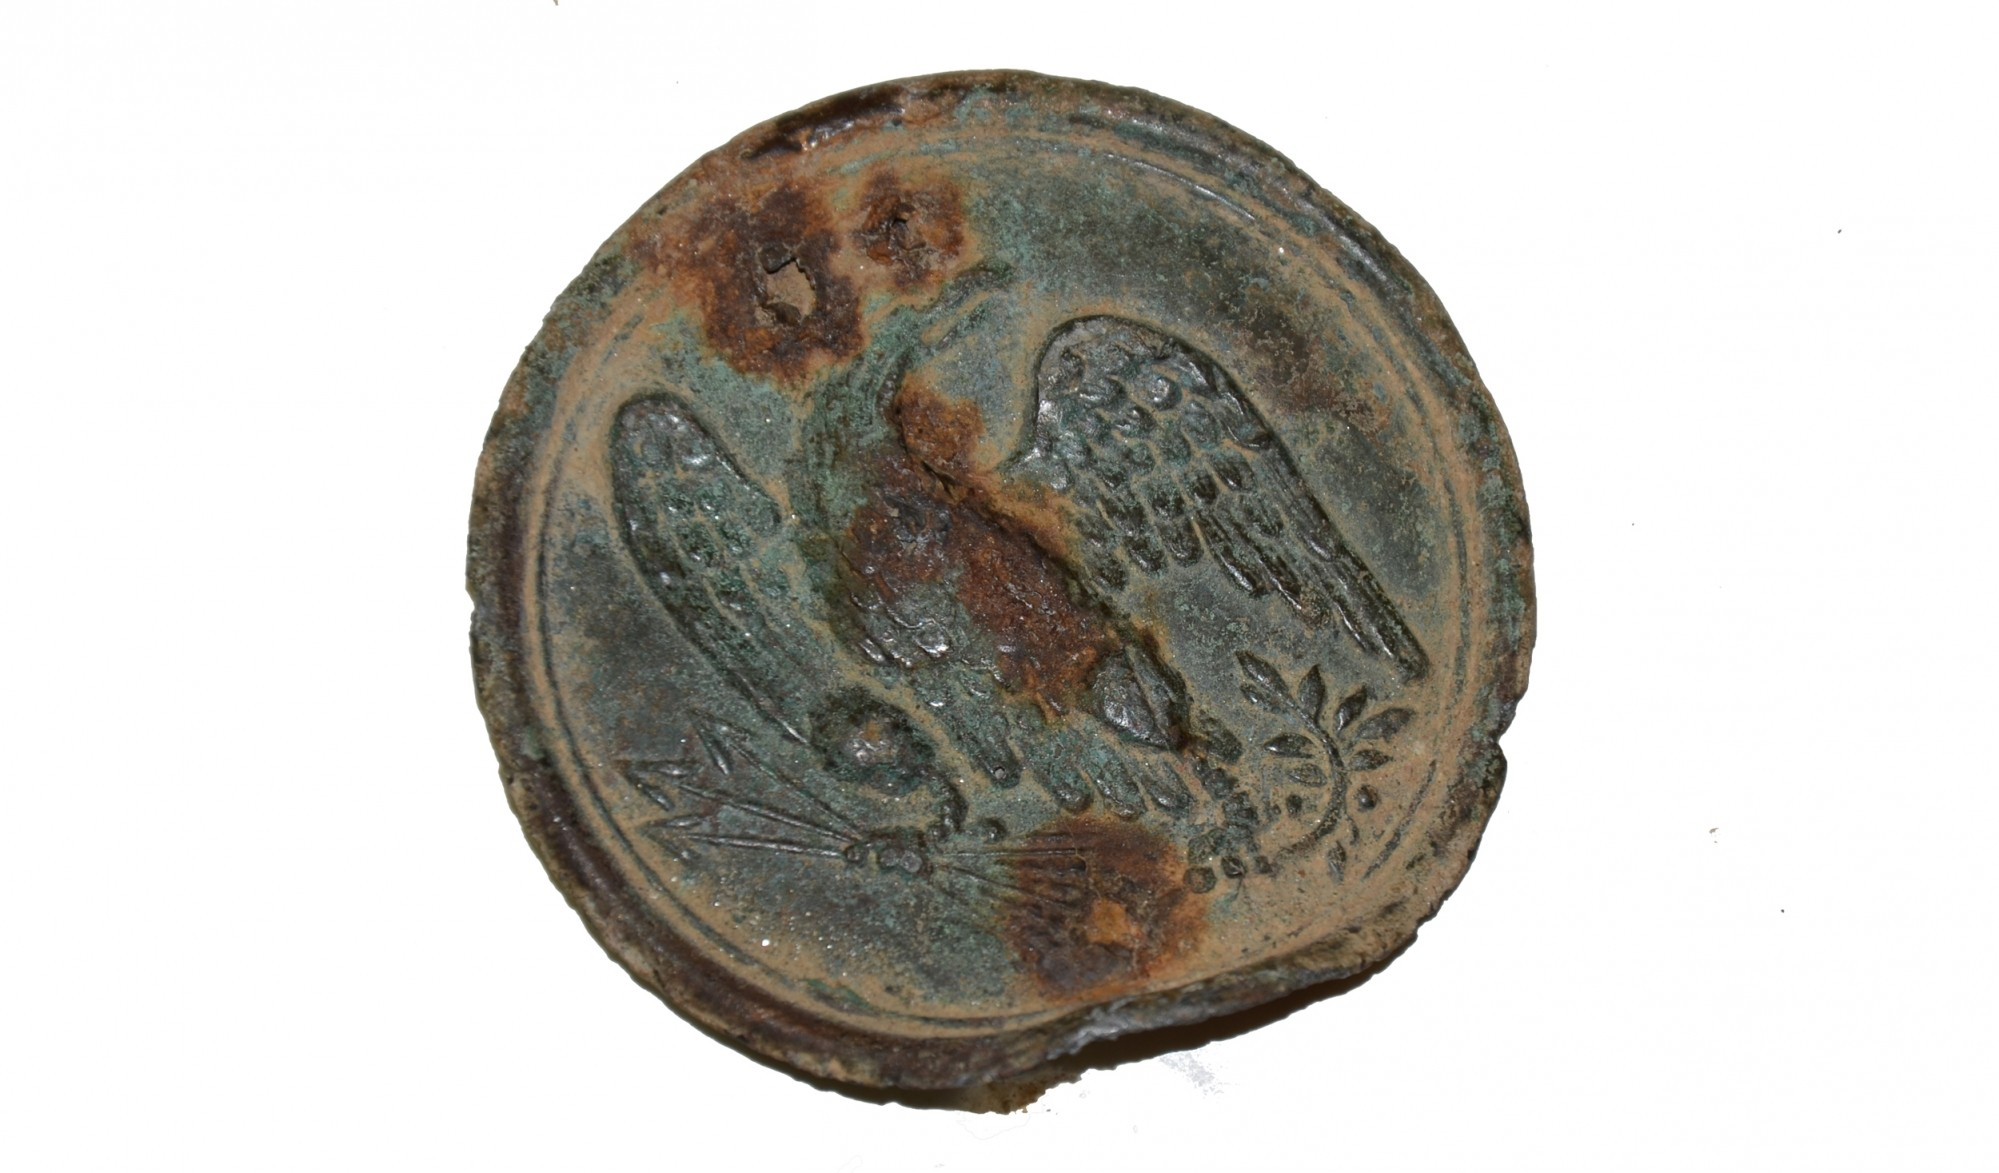 EAGLE BREAST PLATE RECOVERED AT FORT ETHAN ALLEN, VIRGINIA